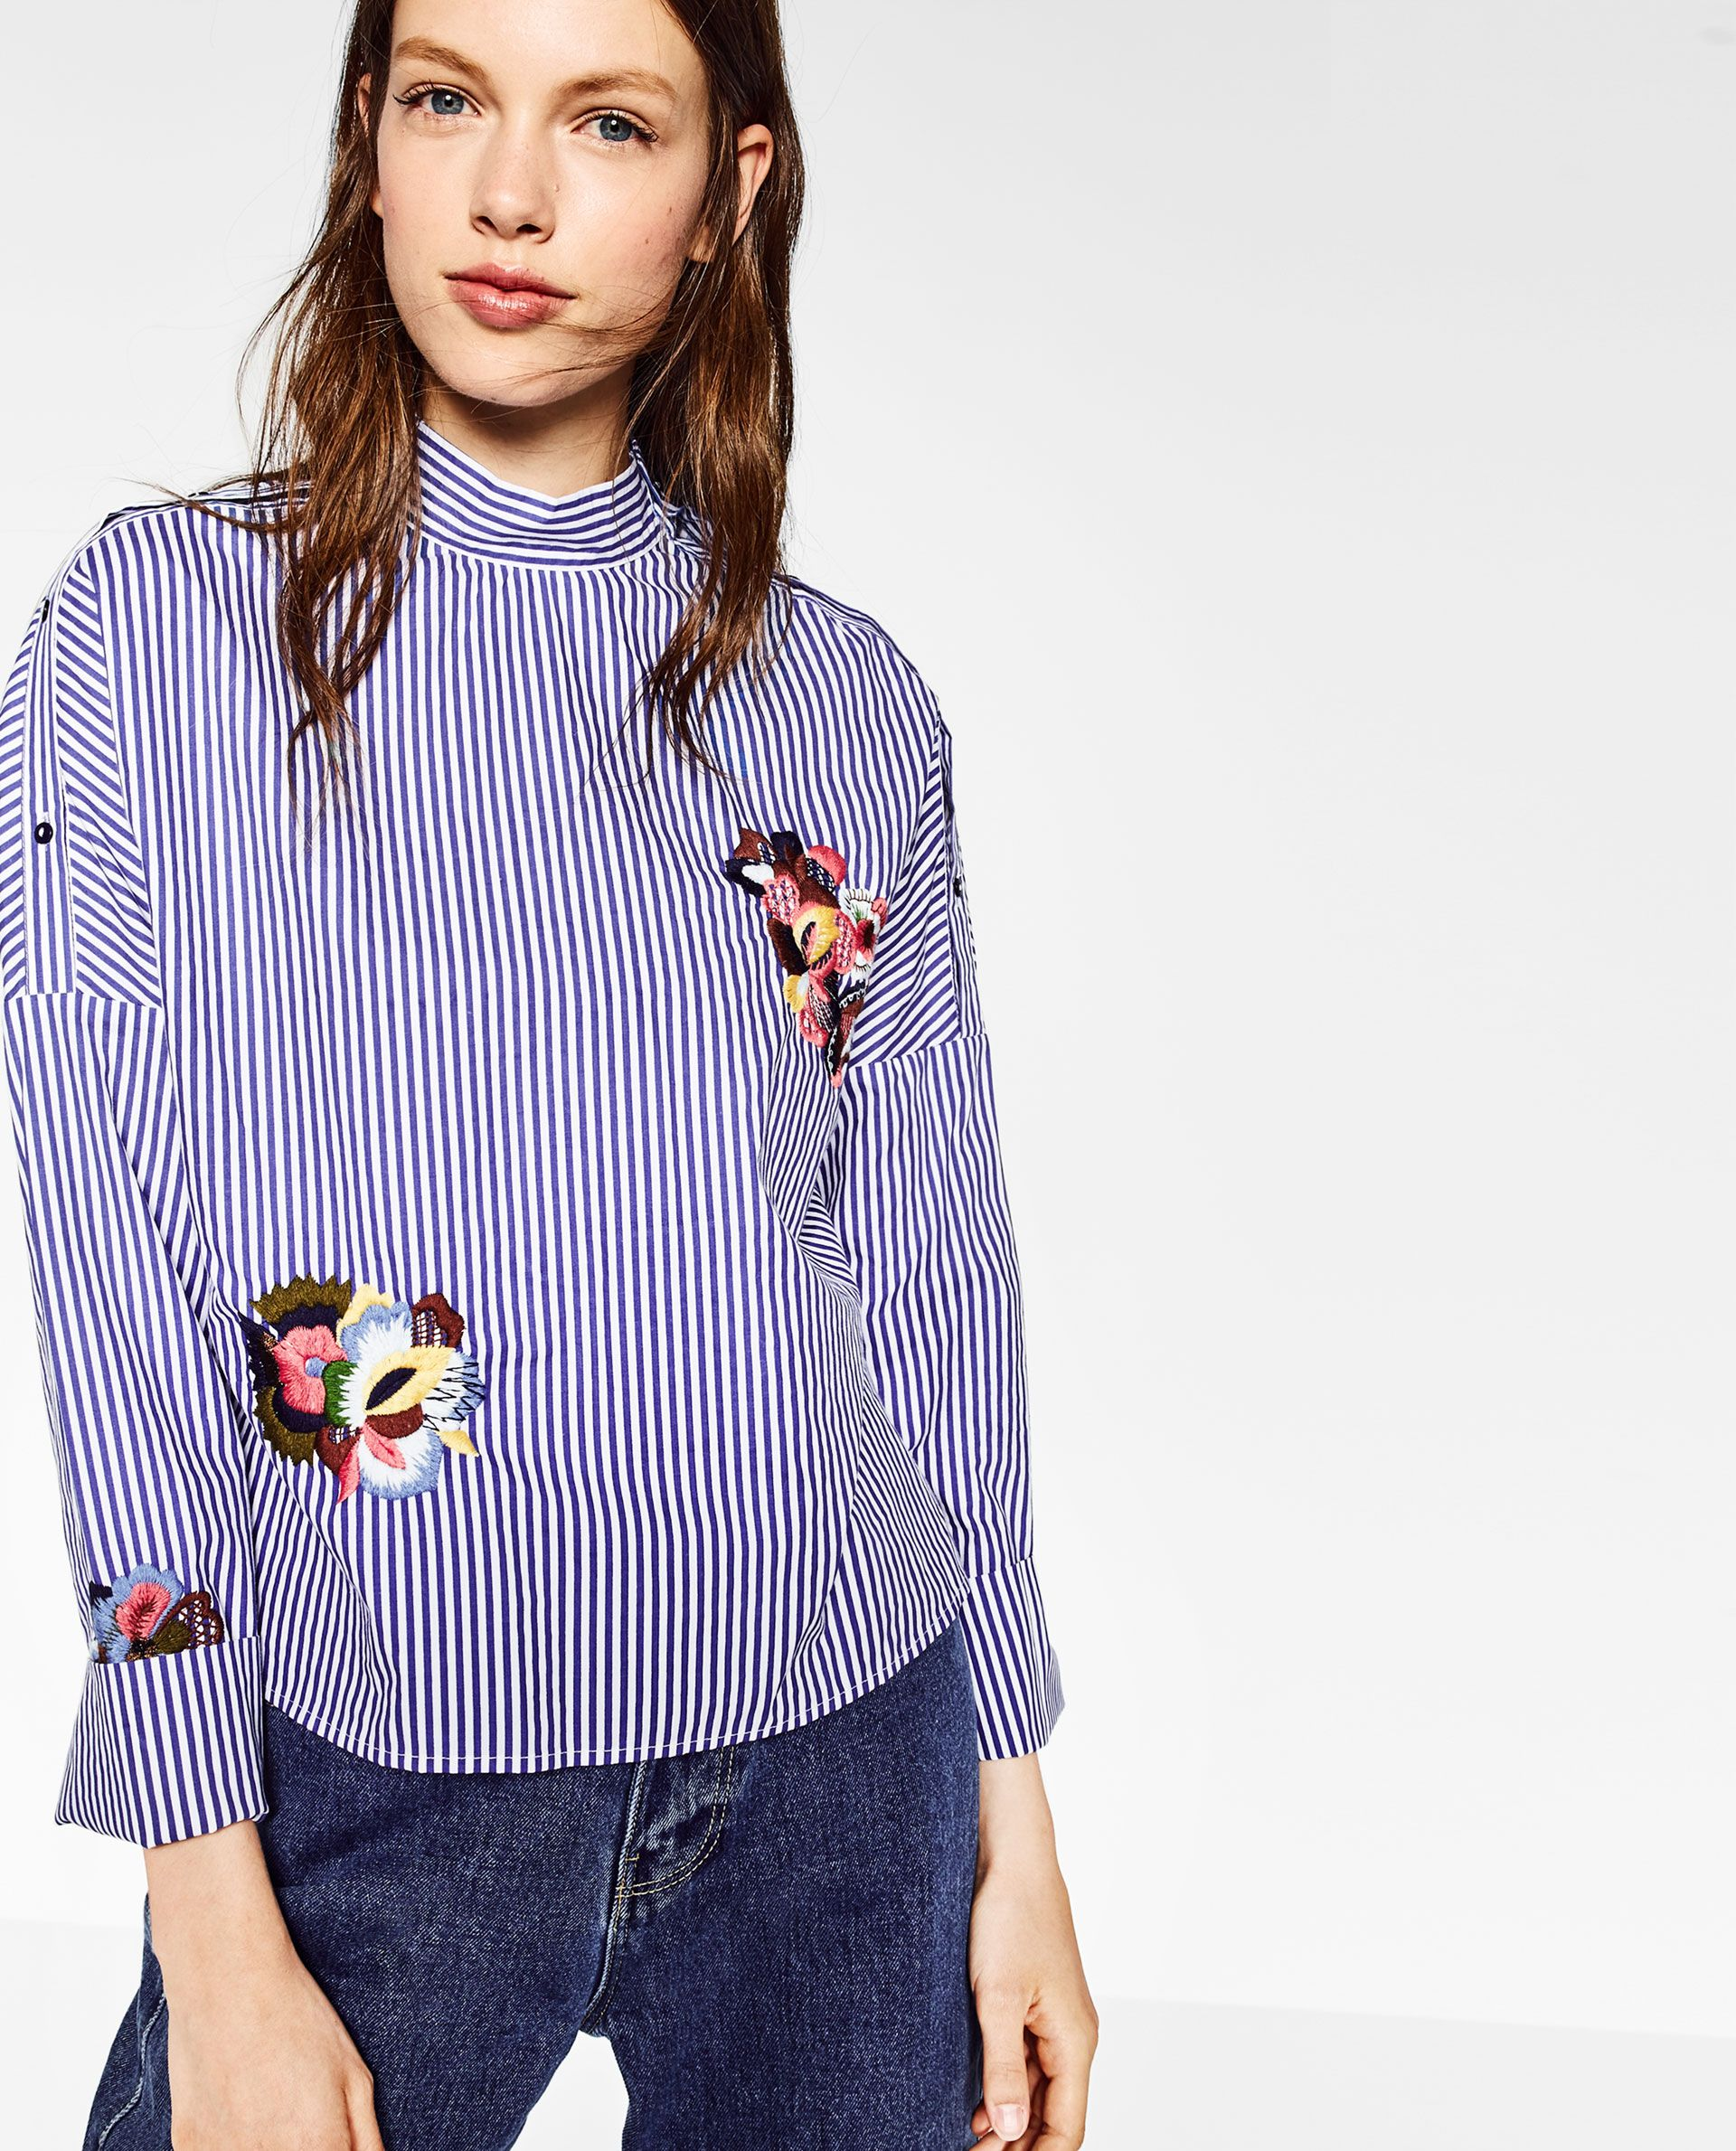 ZARA - WOMAN - FLORAL EMBROIDERED STRIPED SHIRT | varrando ...